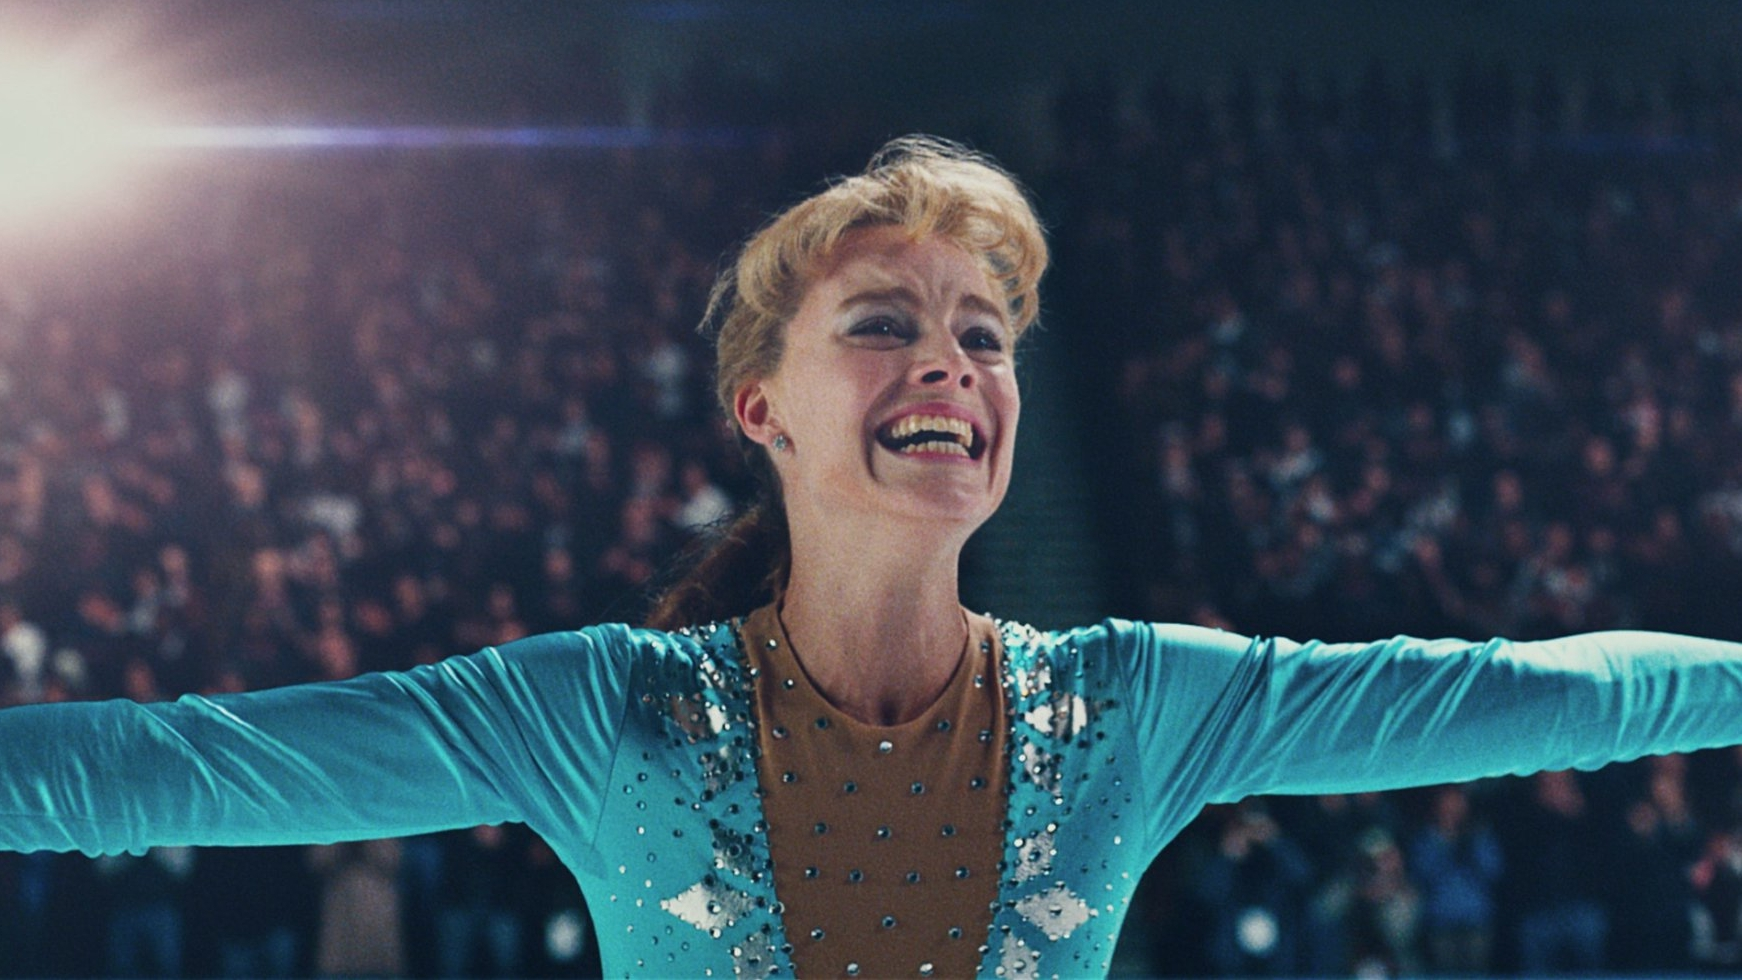 1-Tonya-Harding-Margot-Robbie-after-landing-the-triple-axel-in-I-TONYA-courtesy-of-NEON-and-30WEST.jpg